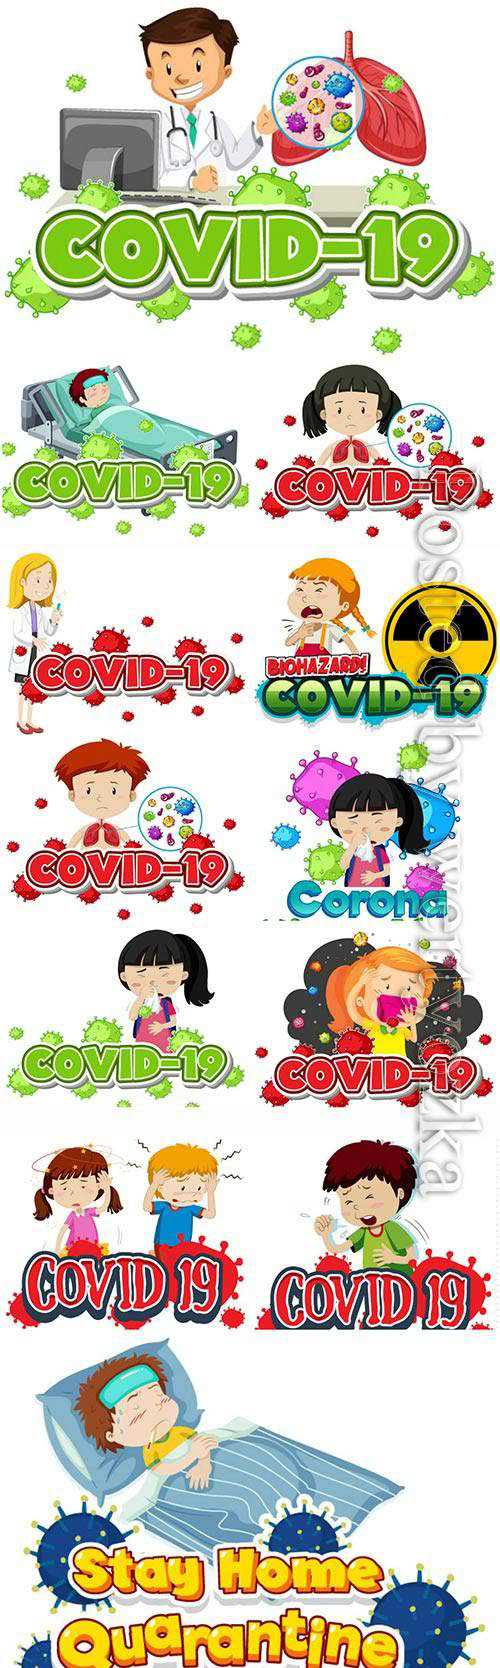 COVID 19, Coranavirus vector illustration sets # 18